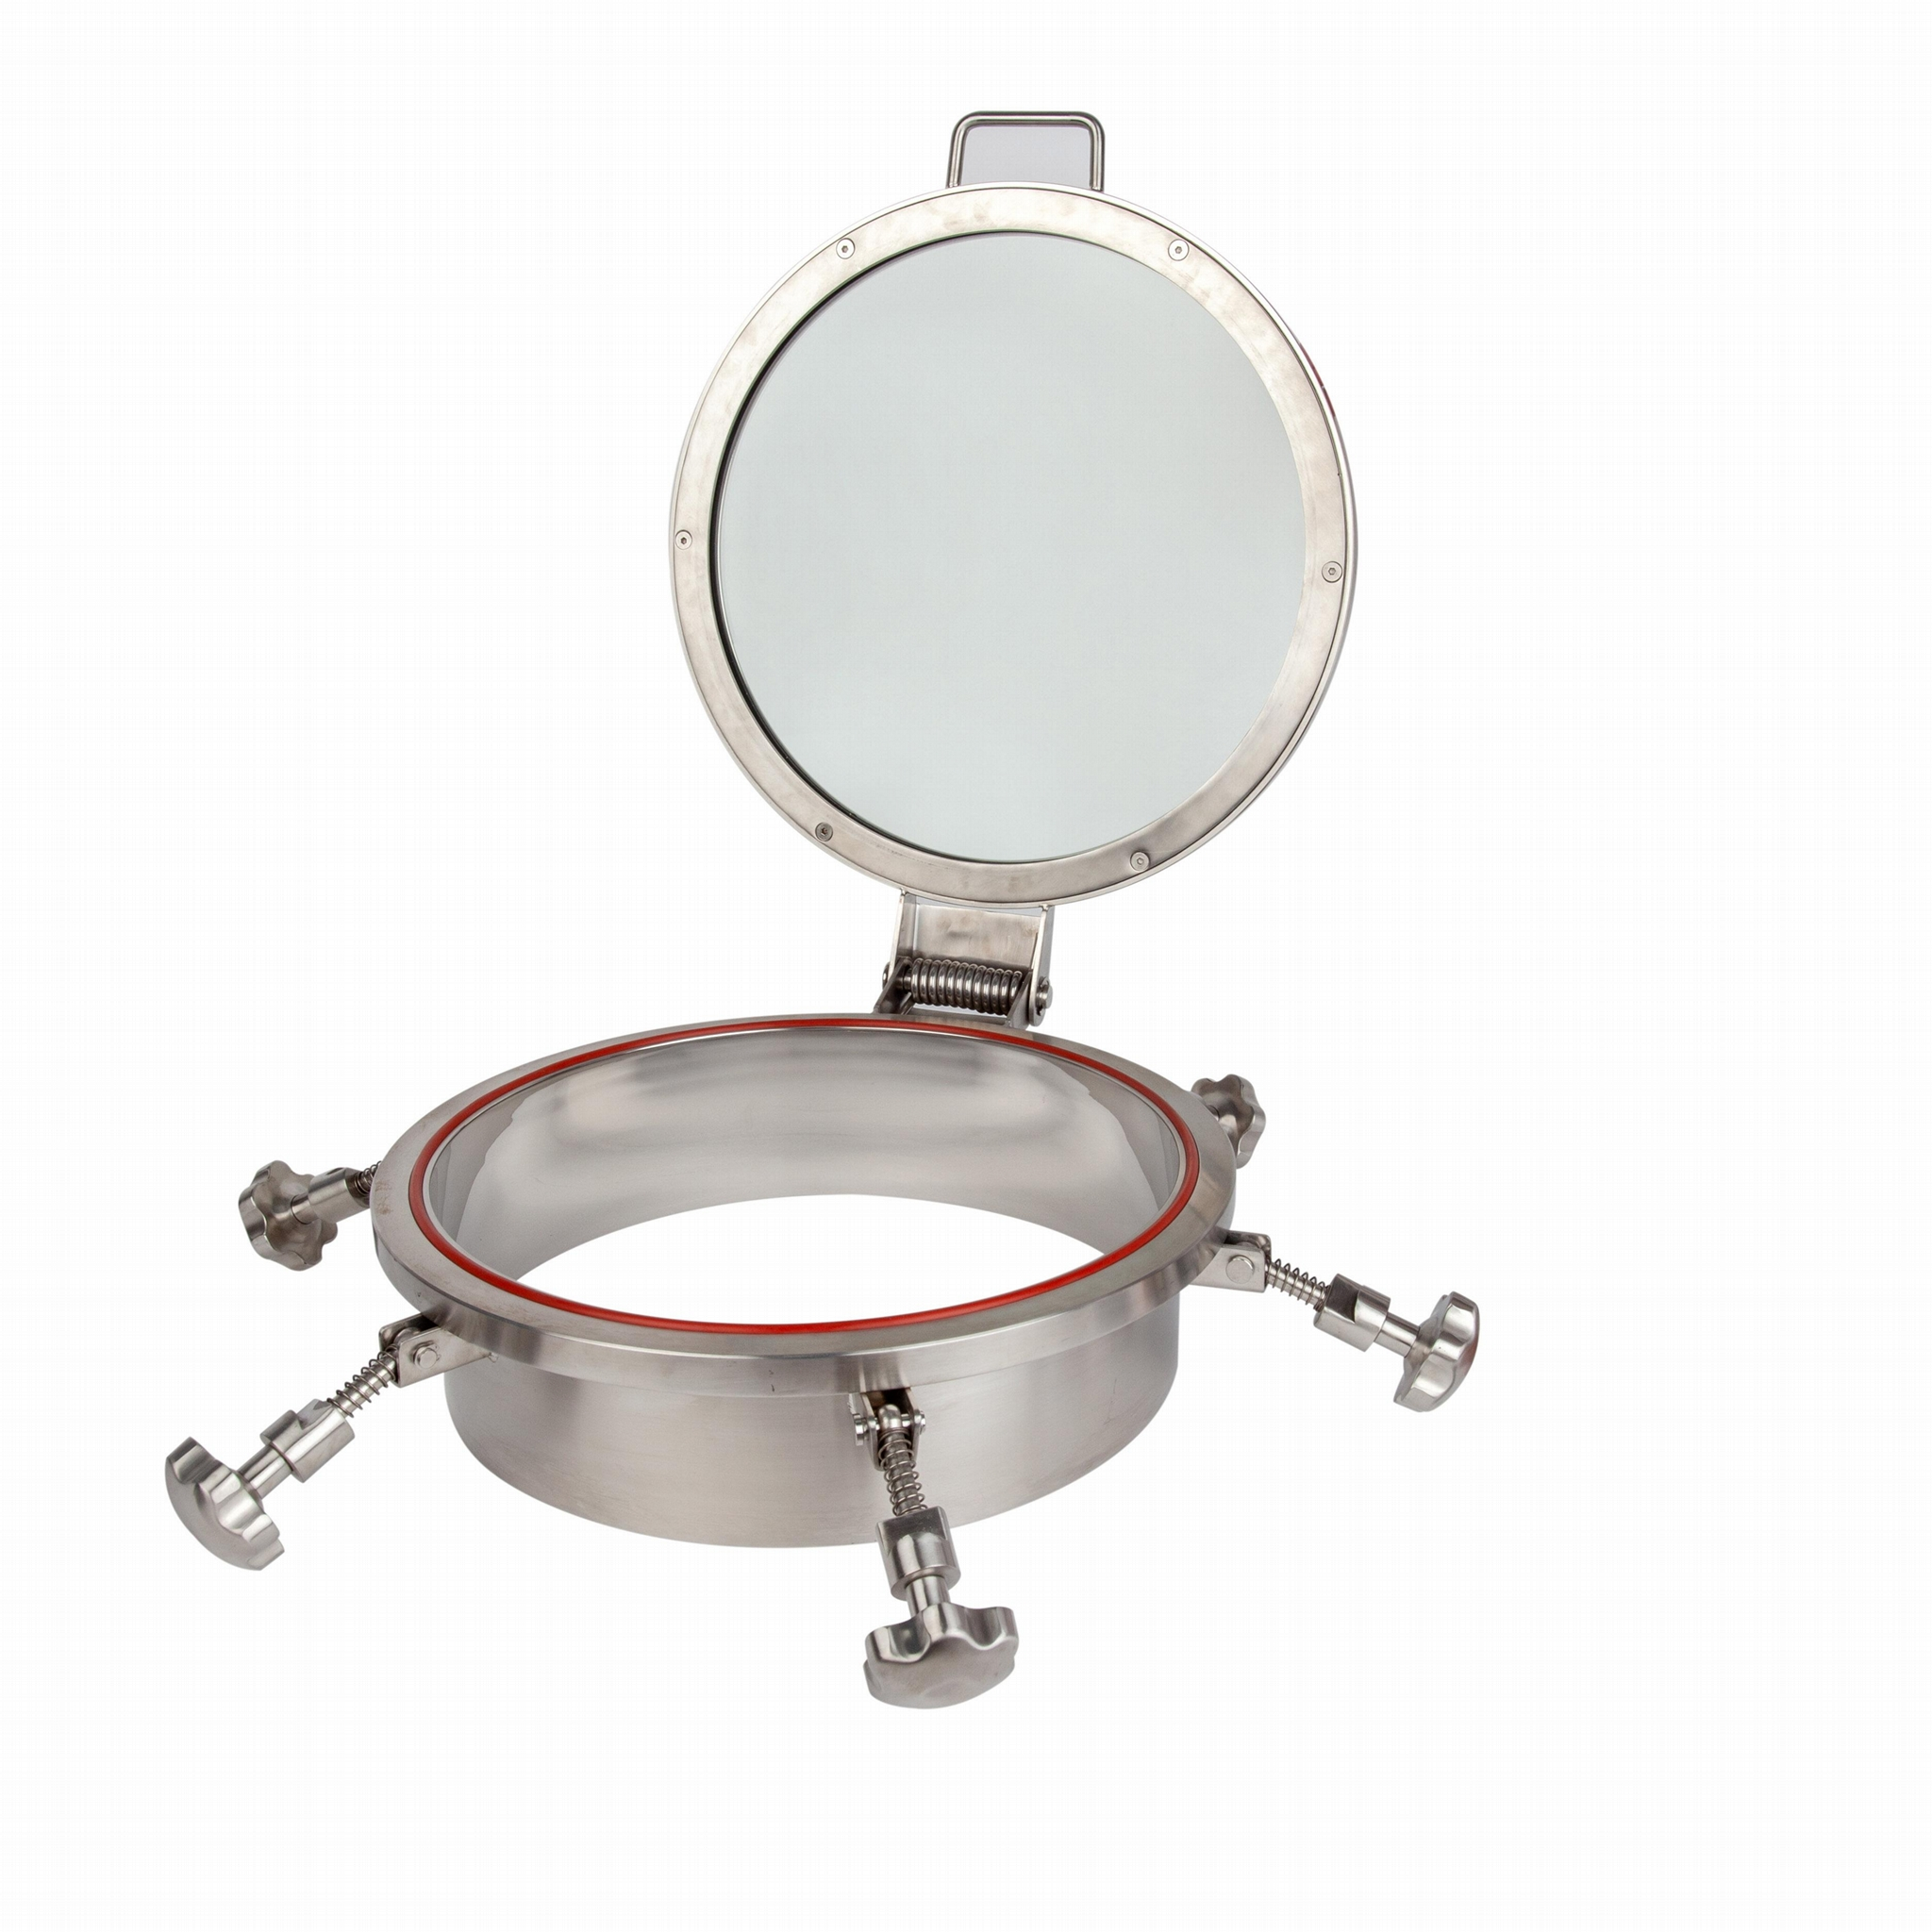 food beverage stainless steel manhole cover chemical sanitary man hole with sigh 5